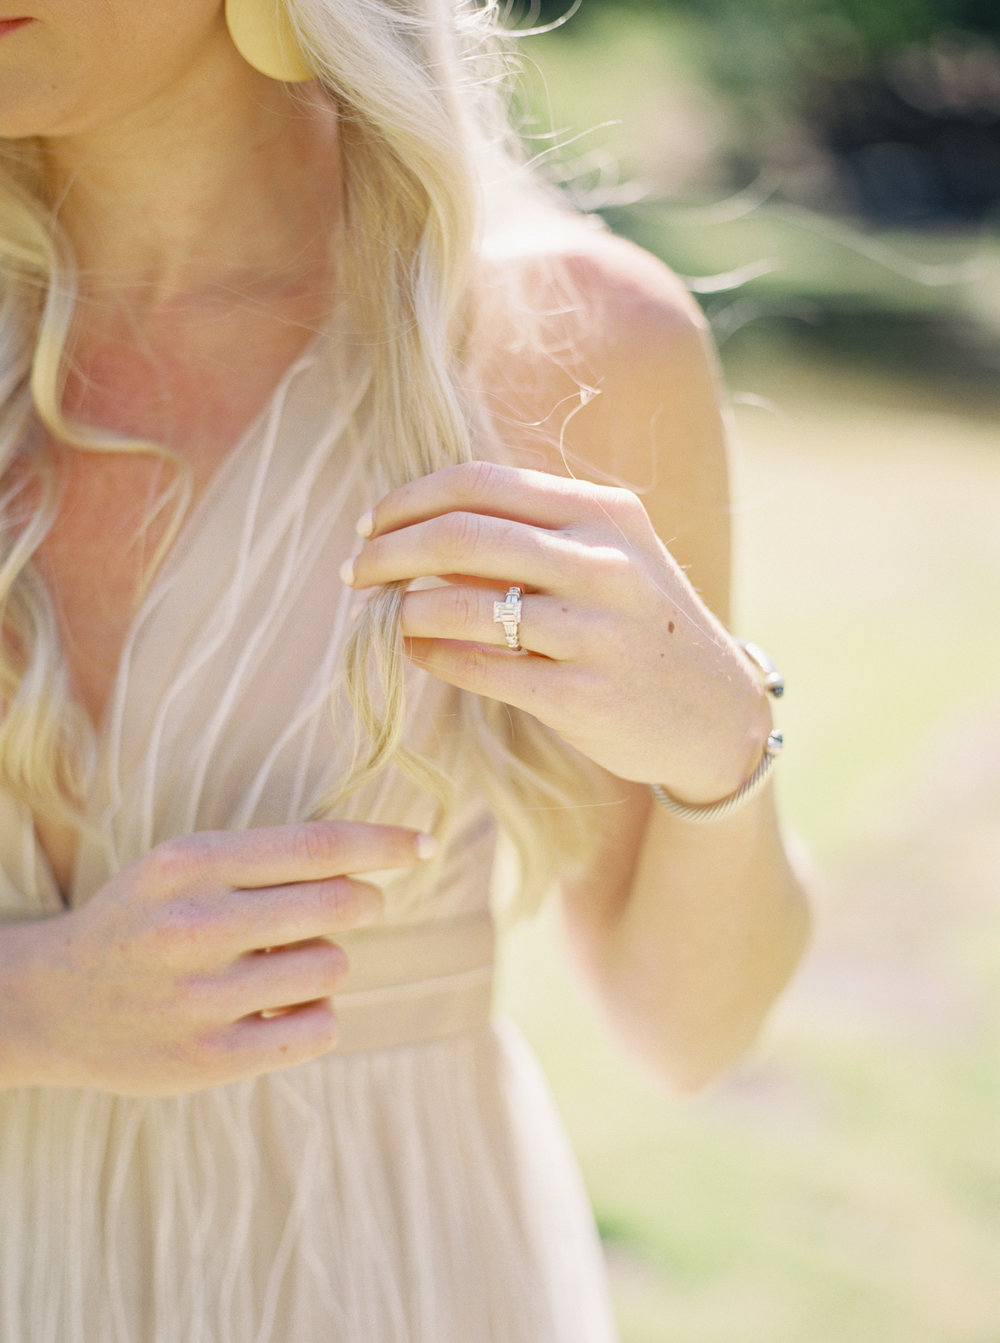 Erin_Johnny_Engagement_Dunaway_Gardens_Georgia_Film_Fallen_Photography-13.JPG